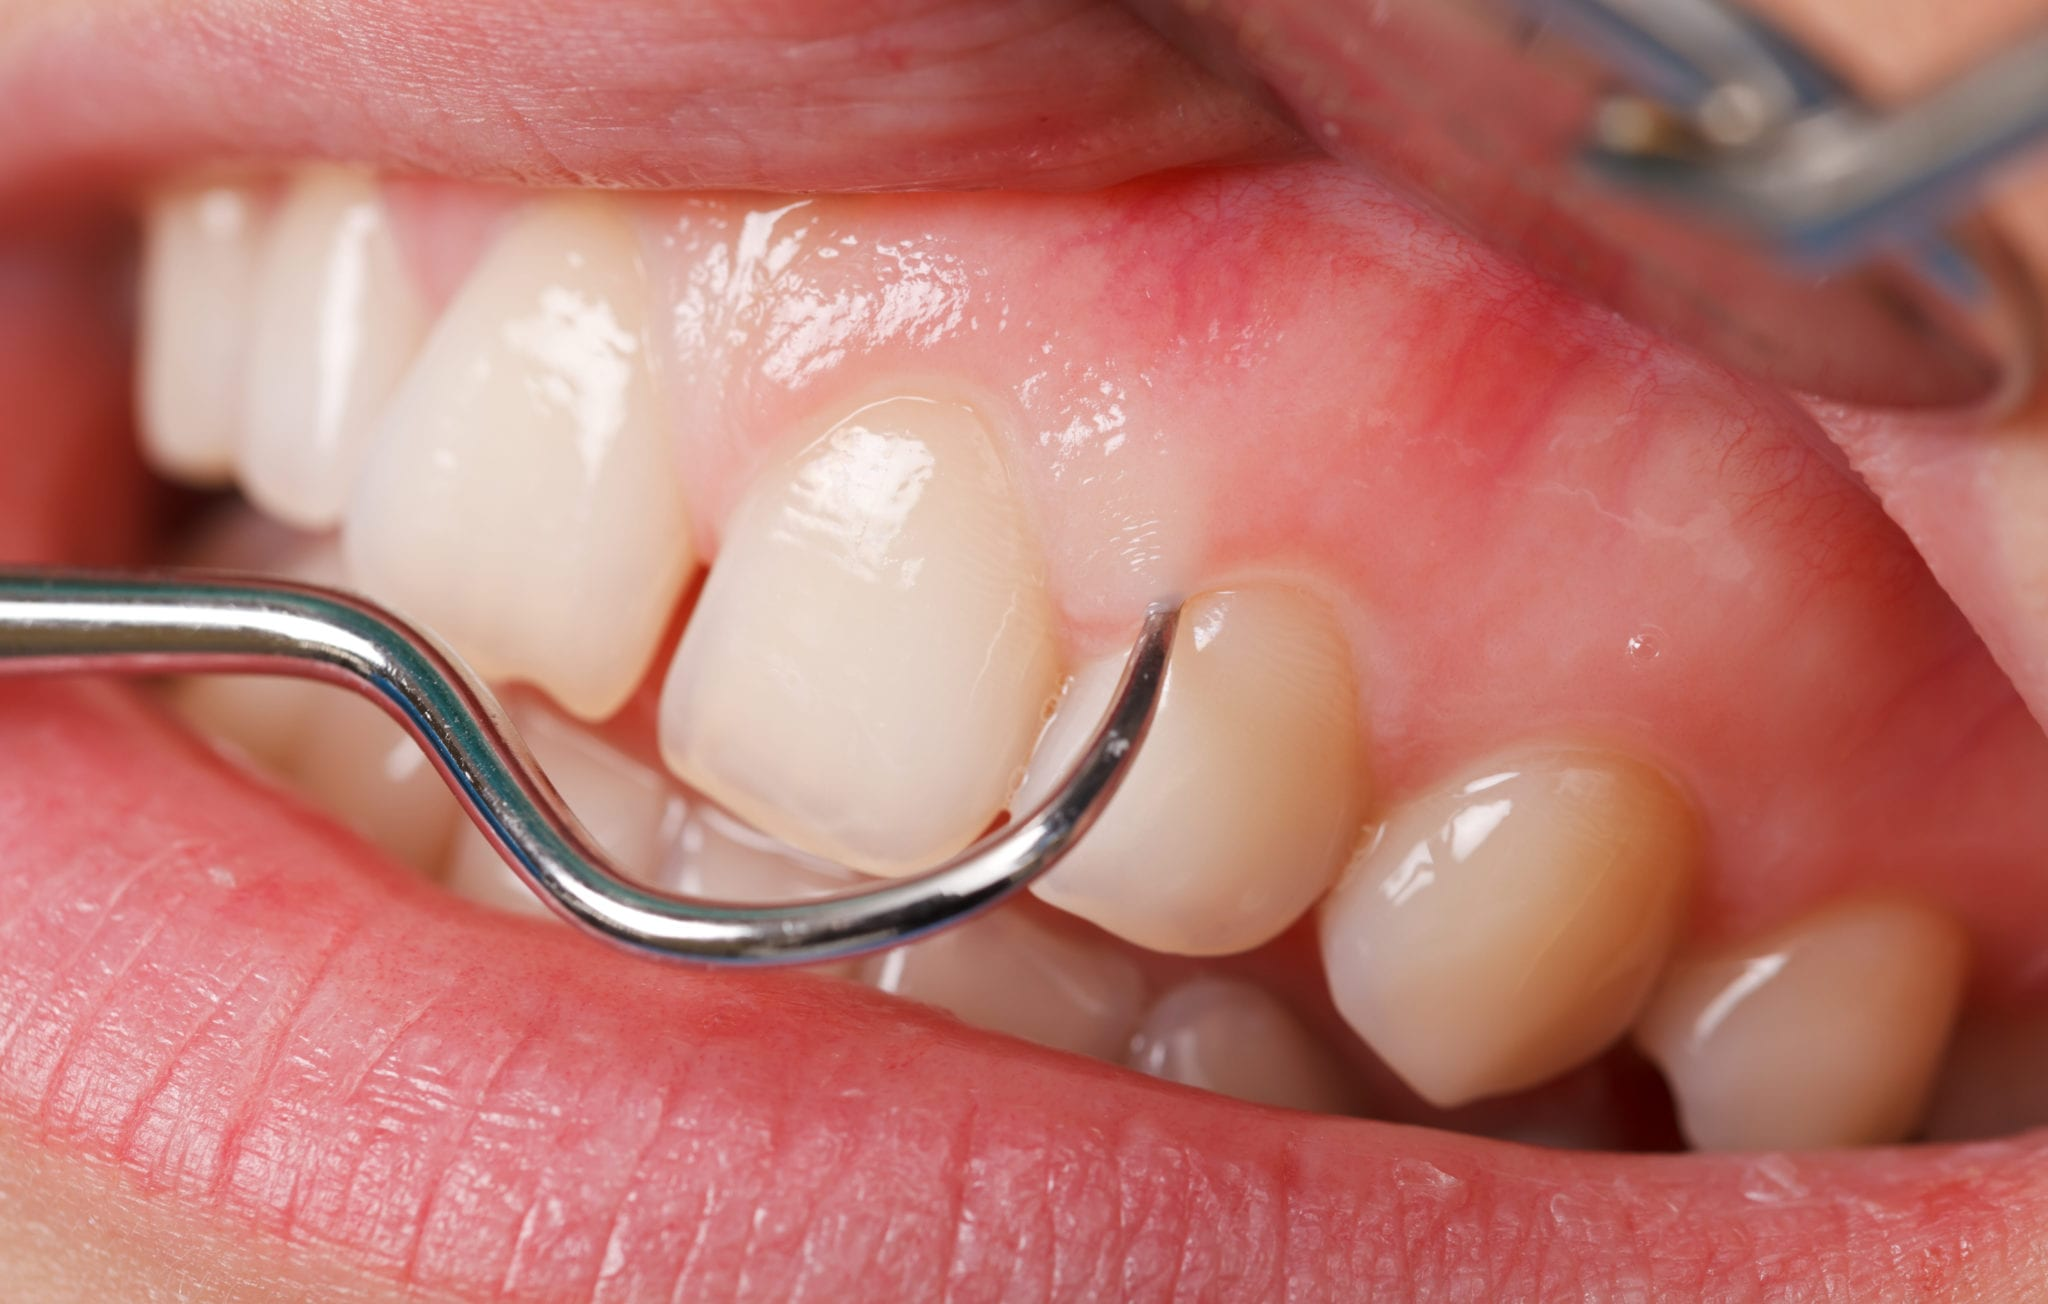 Closeup of teeth receiving a dental cleaning.